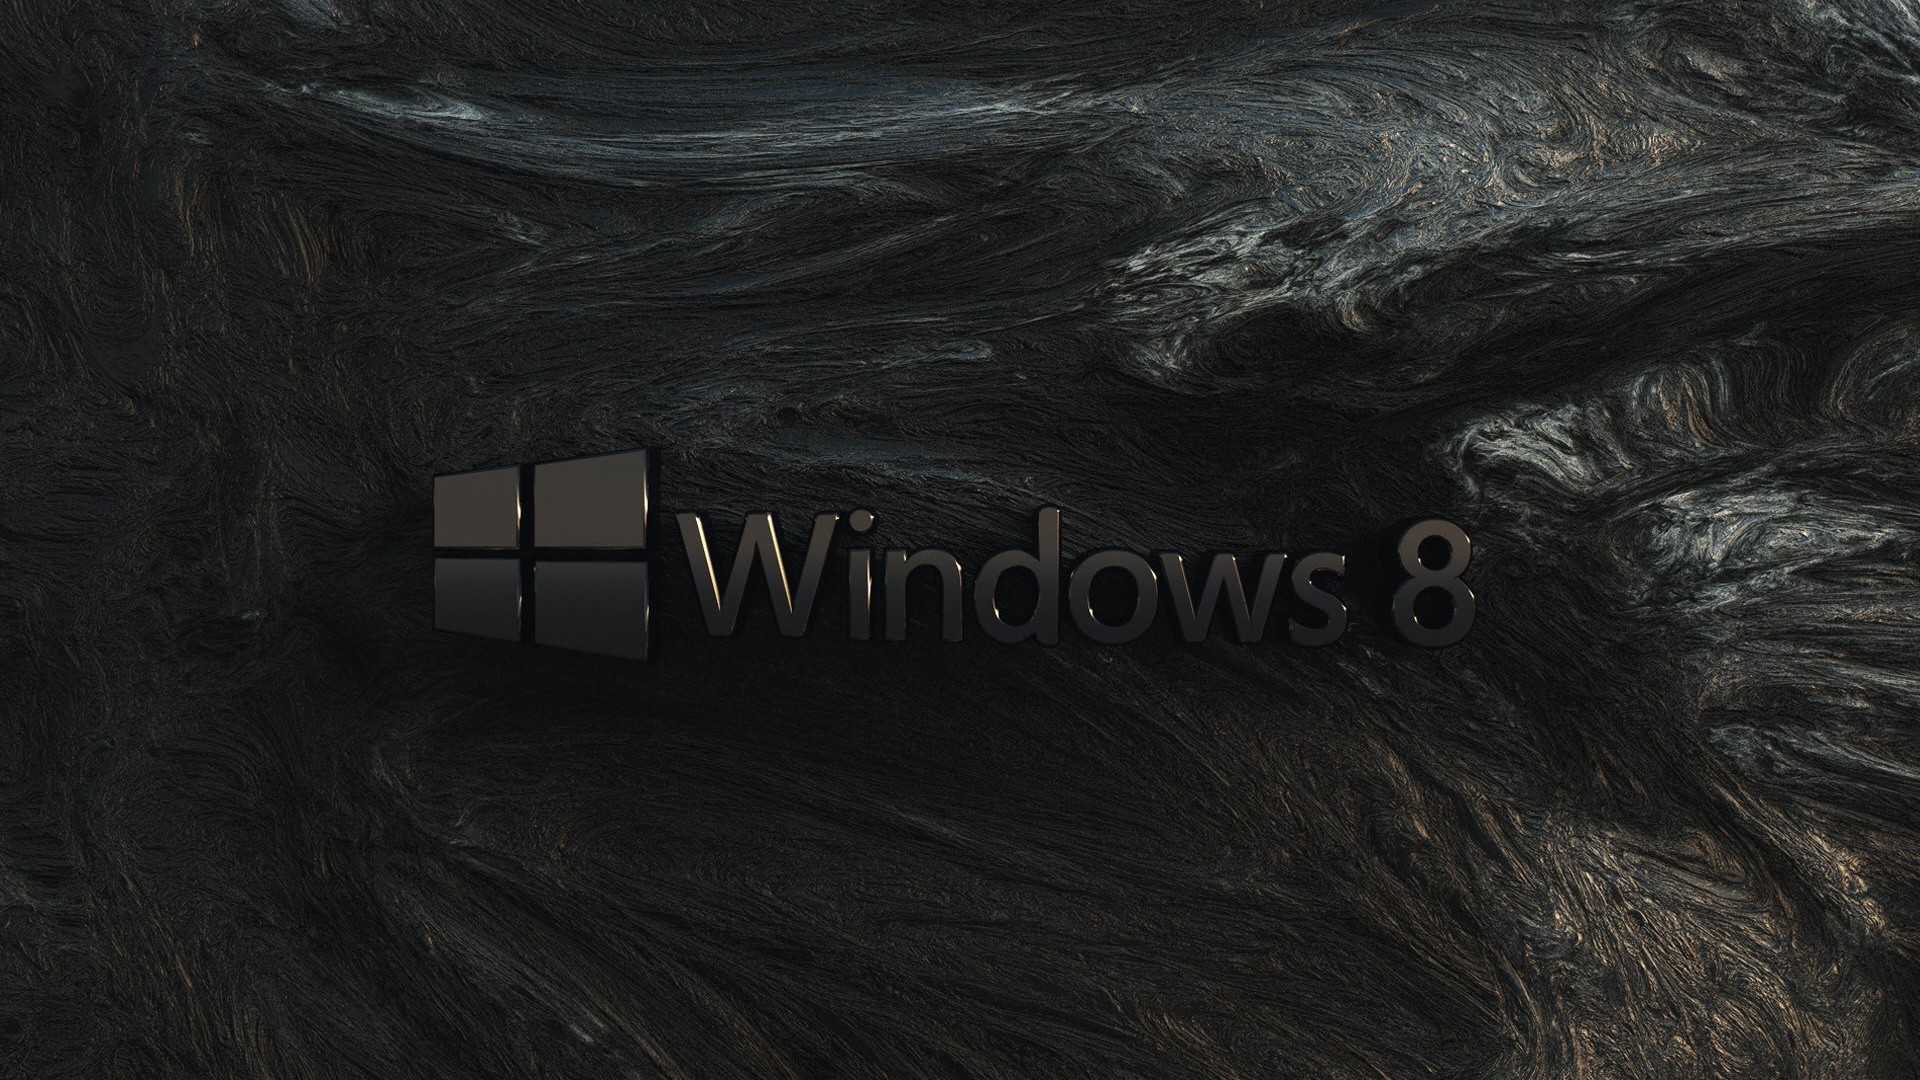 black bark windows 8 - hd wallpapers